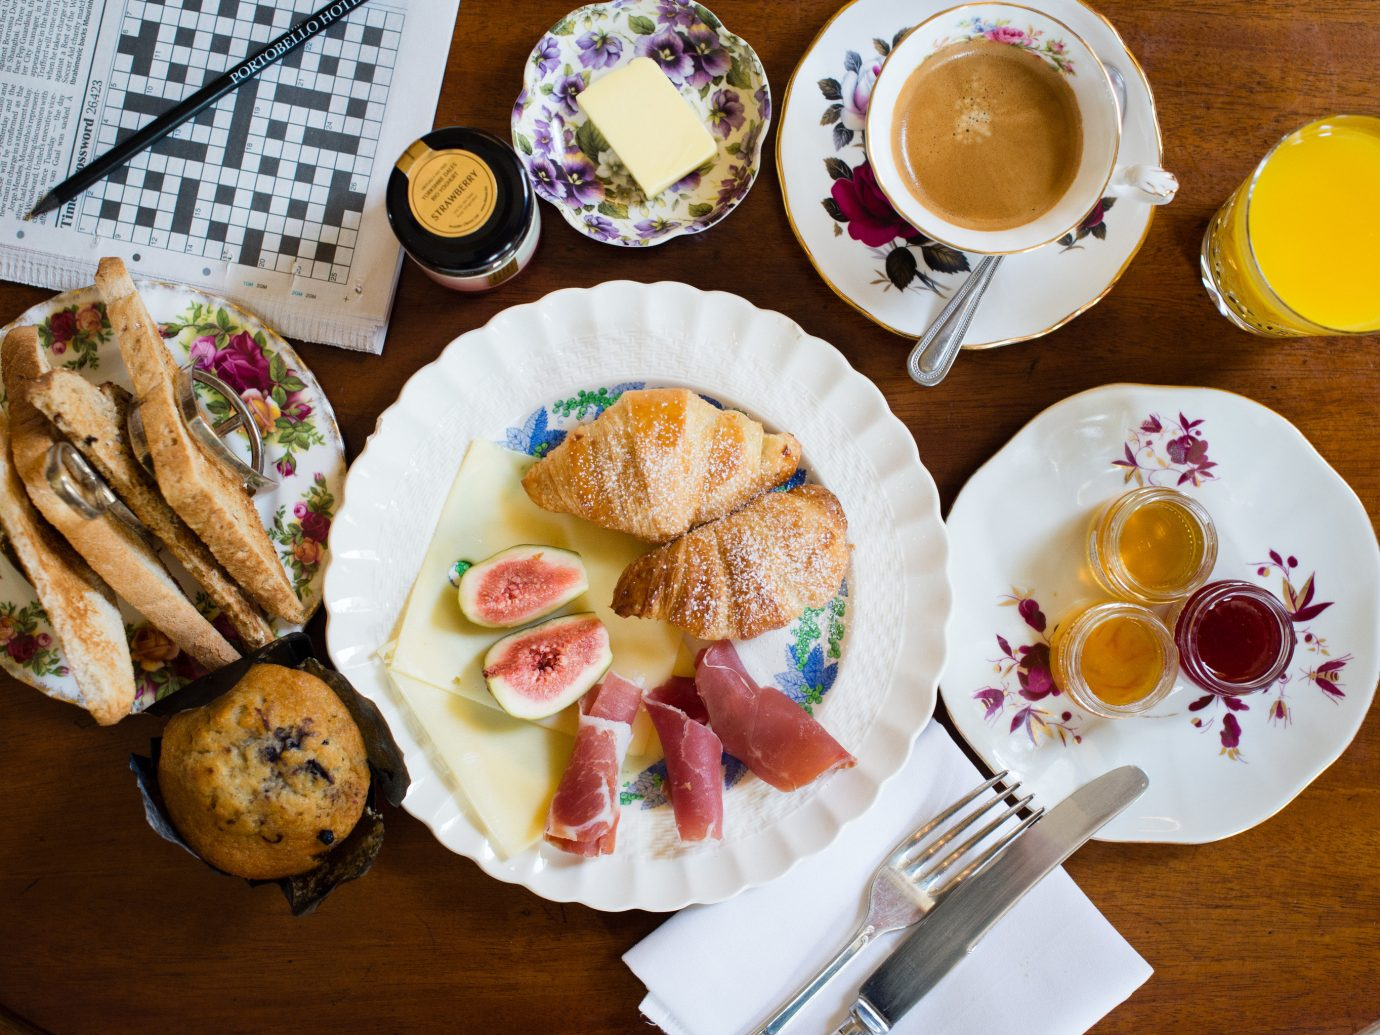 Boutique Hotels Budget Hotels London Romantic Hotels table plate food cup dish meal breakfast brunch lunch produce baking hors d oeuvre cuisine Drink restaurant set